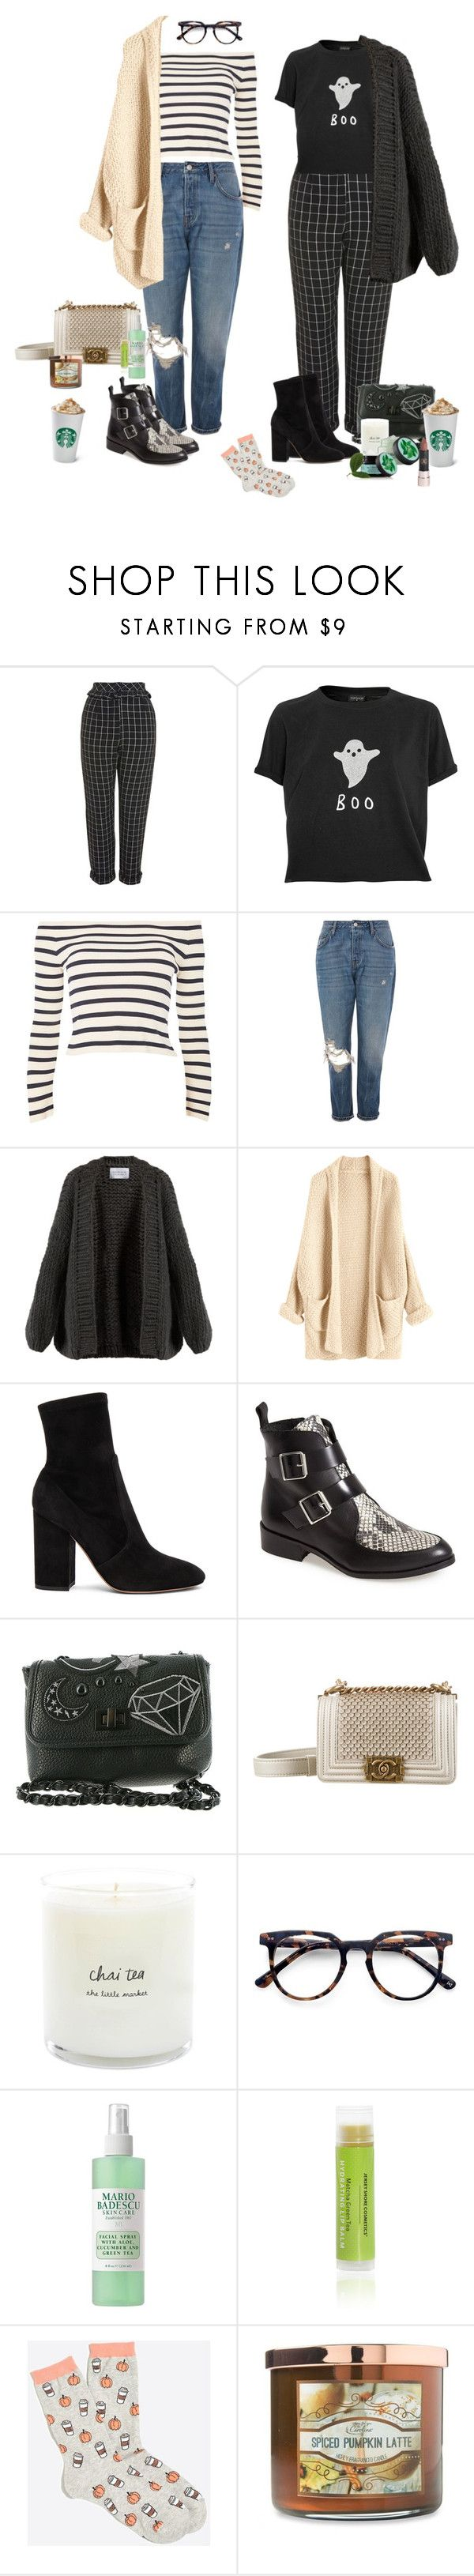 """""""Coffee break"""" by audrey-balt on Polyvore featuring Topshop, I Love Mr. Mittens, Valentino, Steve Madden, Chanel, Fuji, Ace, Mario Badescu Skin Care, Carolina Candle and Anastasia Beverly Hills"""